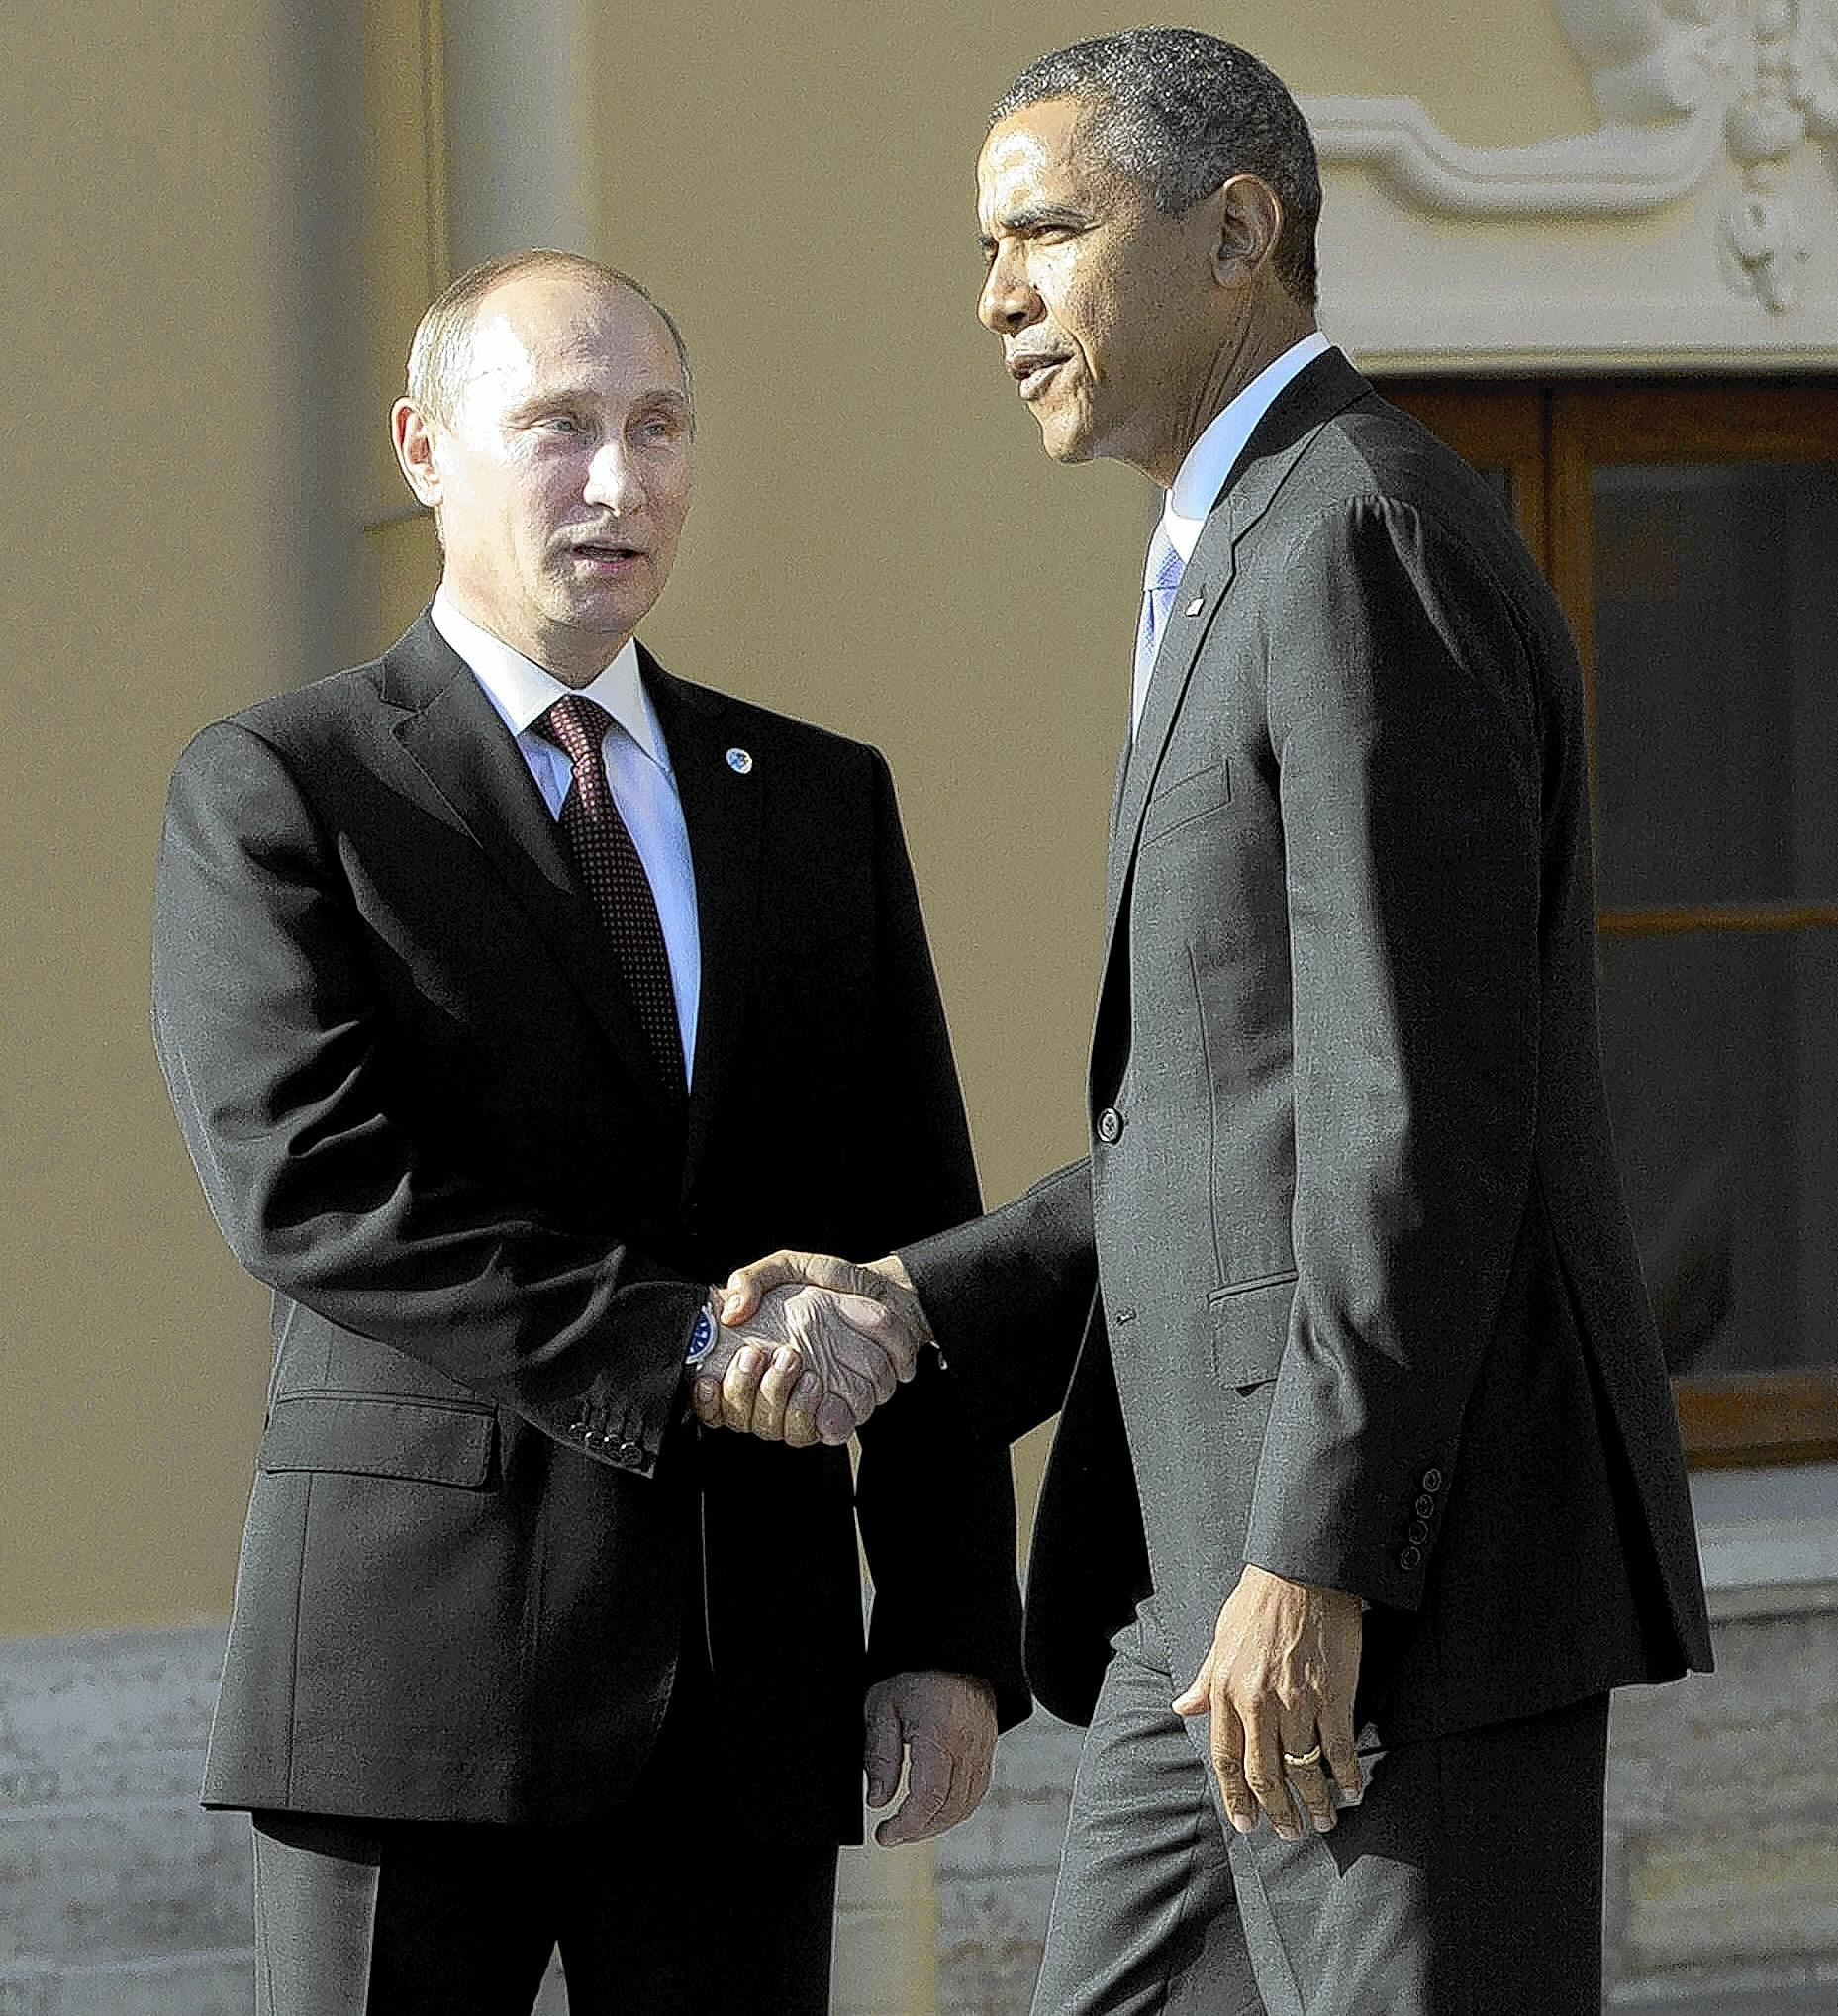 Russian President Vladimir Putin, left, welcomes U.S. President Barack Obama to September's G-20 summit in St. Petersburg, Russia.